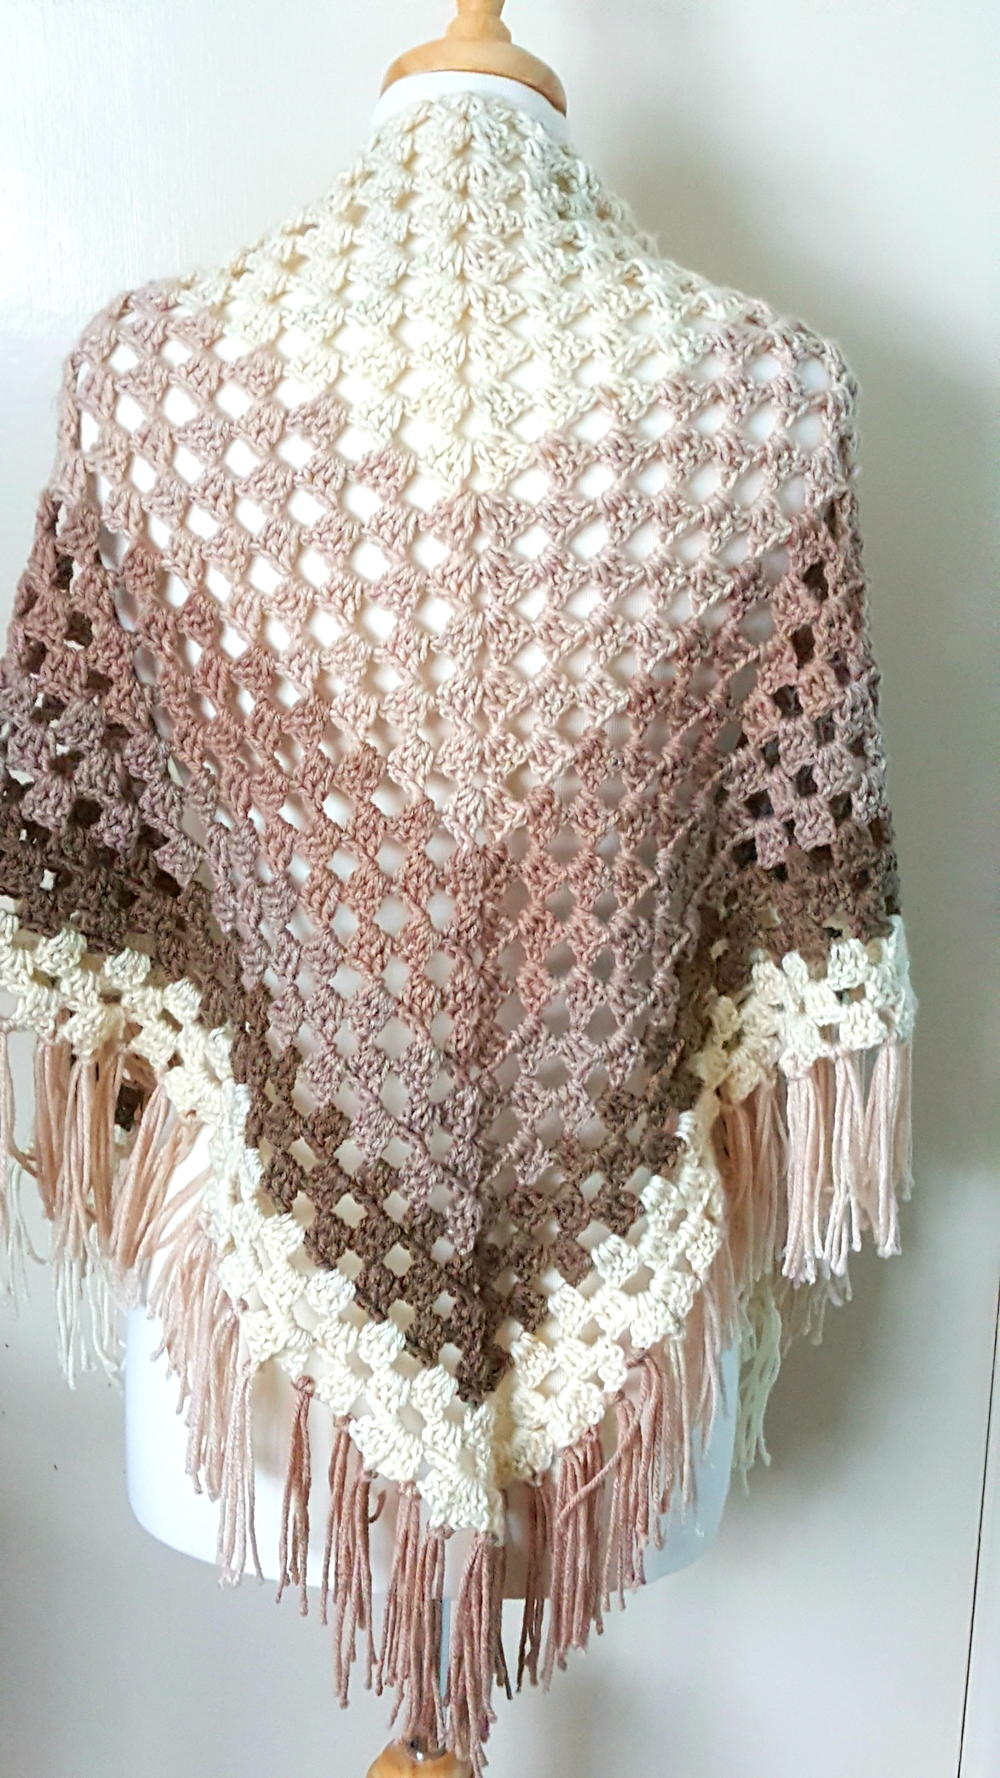 Free Download Crochet Patterns Baby Shawls : Crochet Ombre Shawl AllFreeCrochet.com